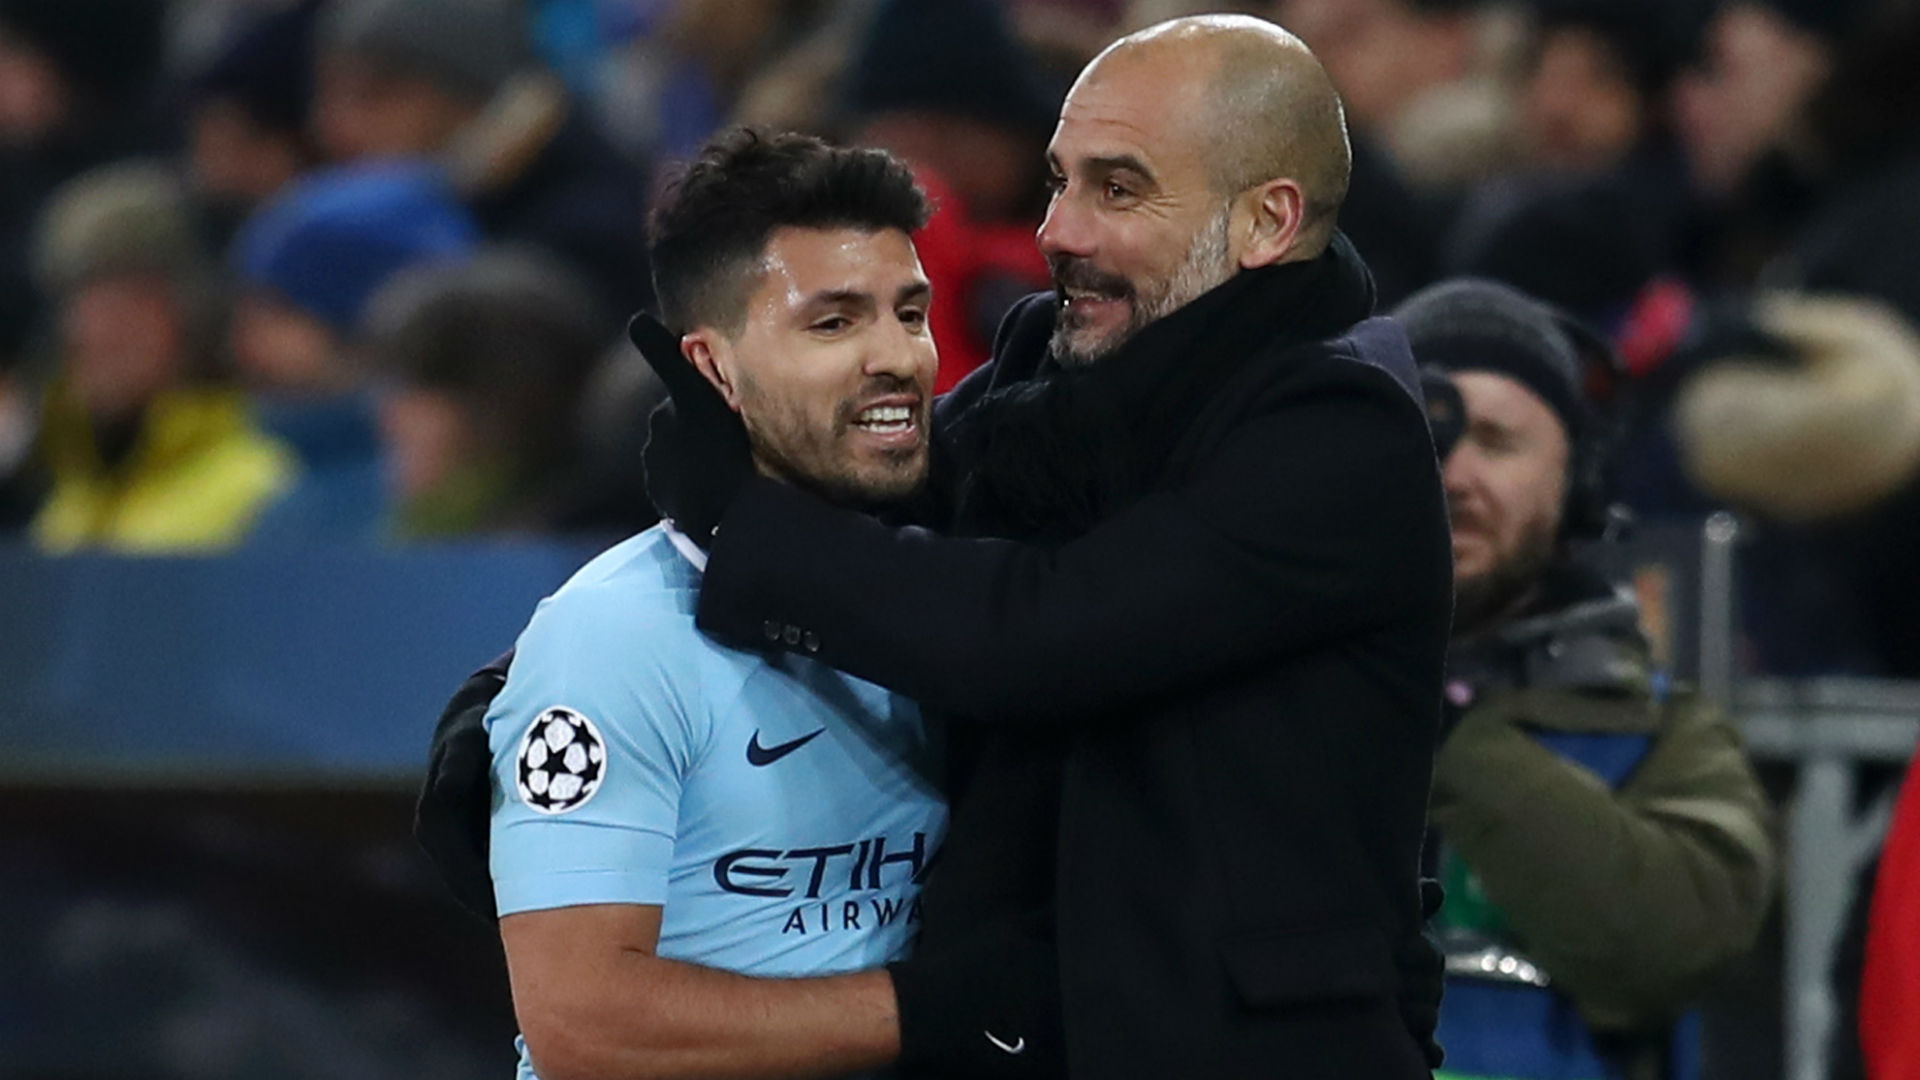 Pep Guardiola, Sergio Aguero send wishes for ISL club Mumbai City